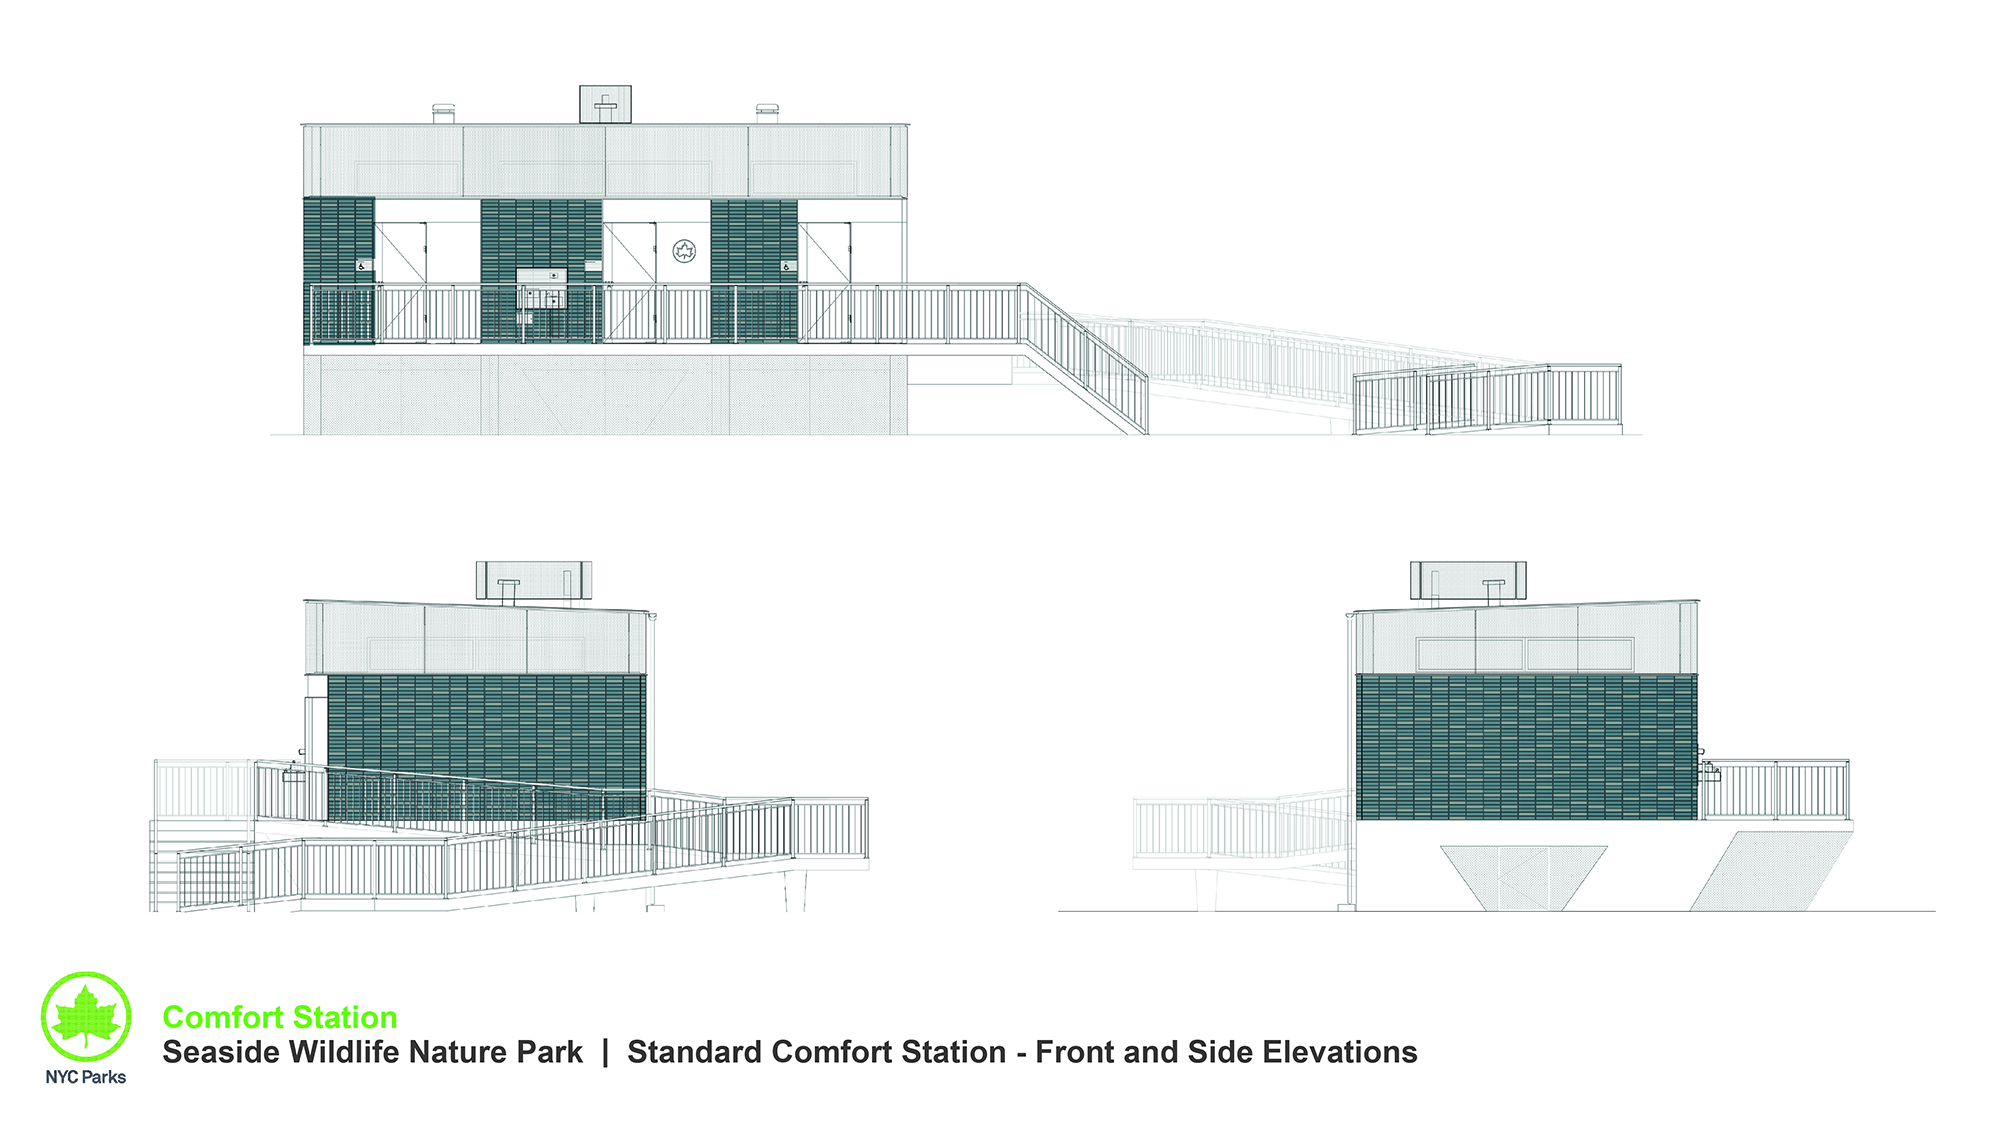 Design of Seaside Wildlife Nature Park Comfort Station Construction